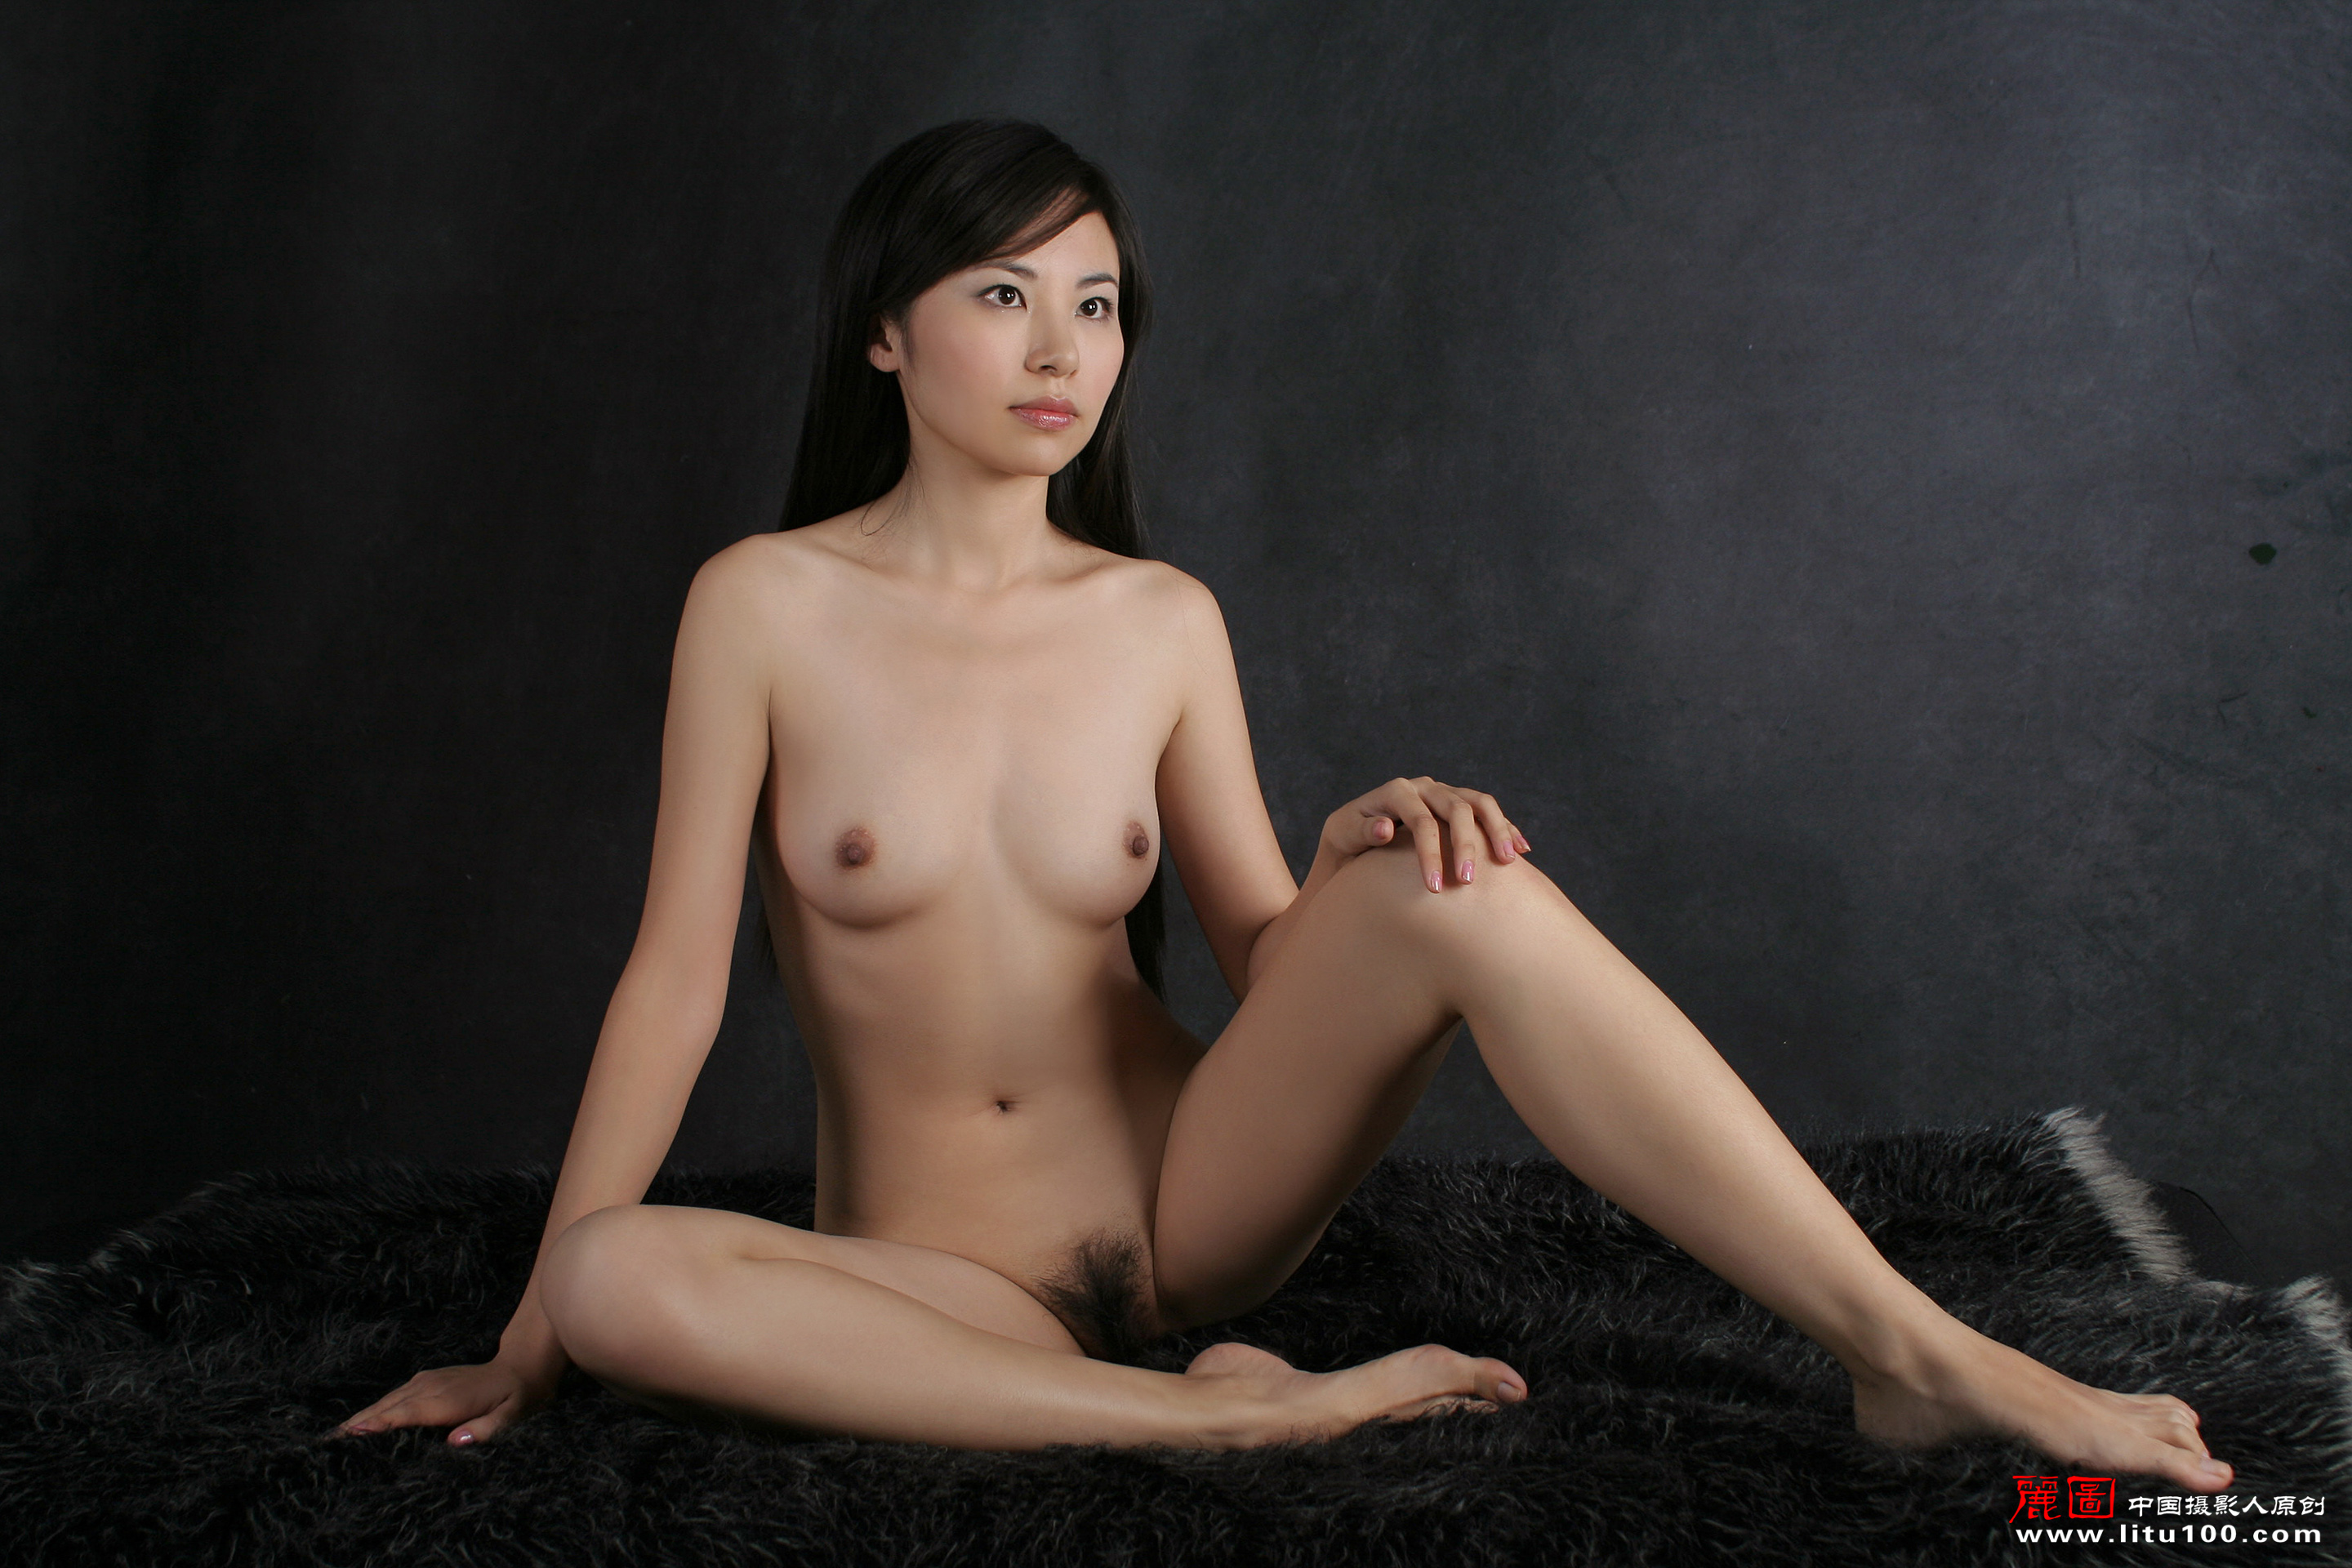 China pussy fleshy vulva nude girls pictures